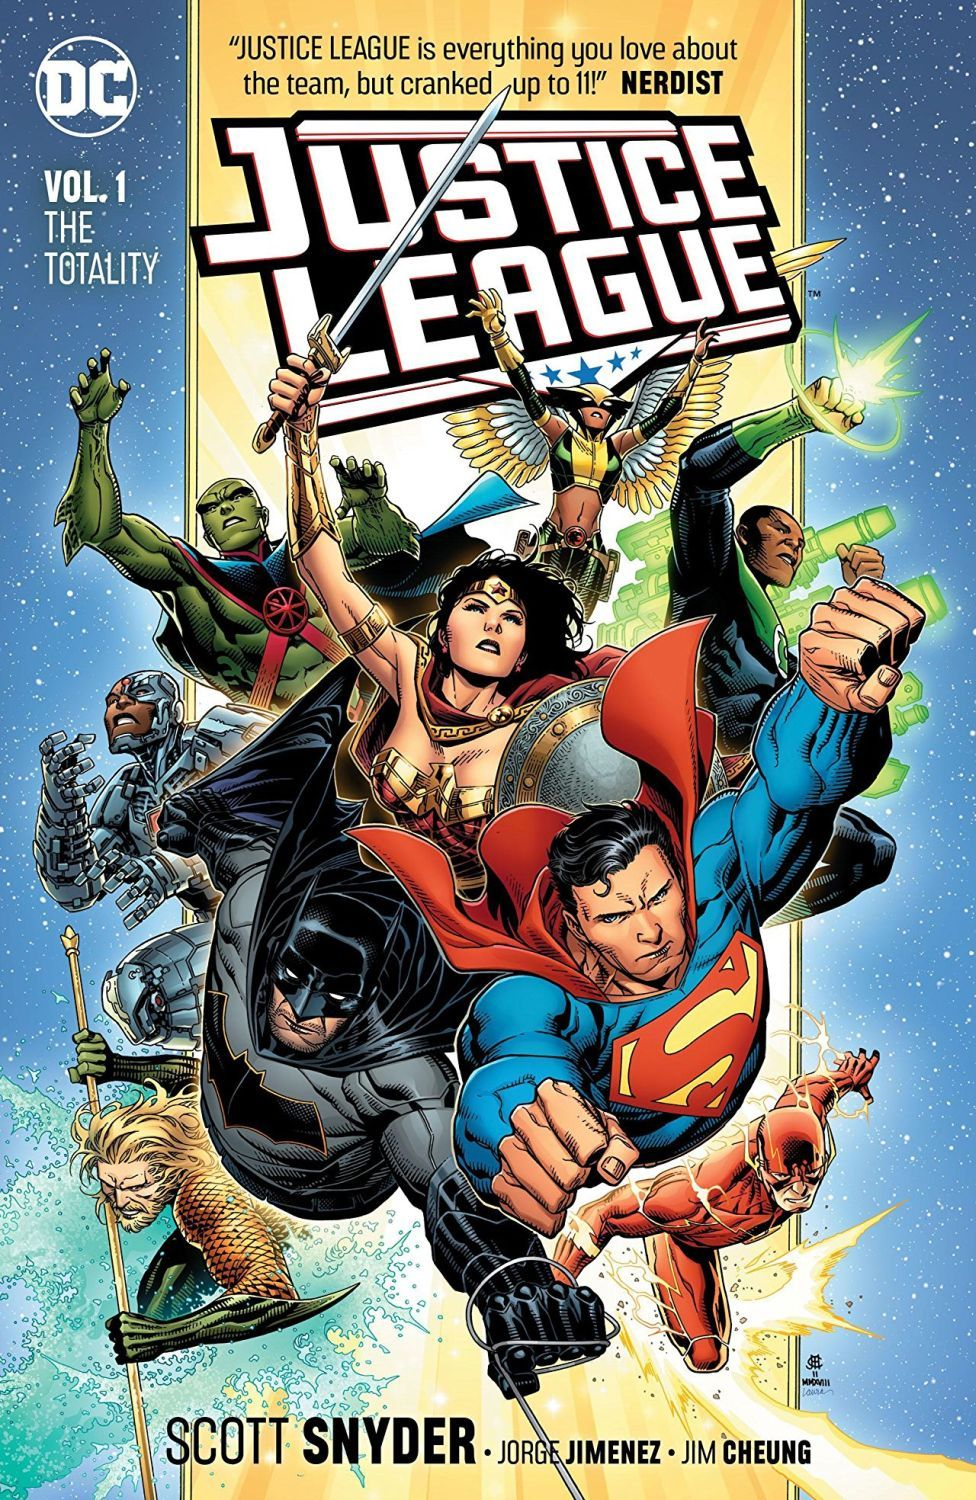 Justice League Vol. 1: The Totality - 1